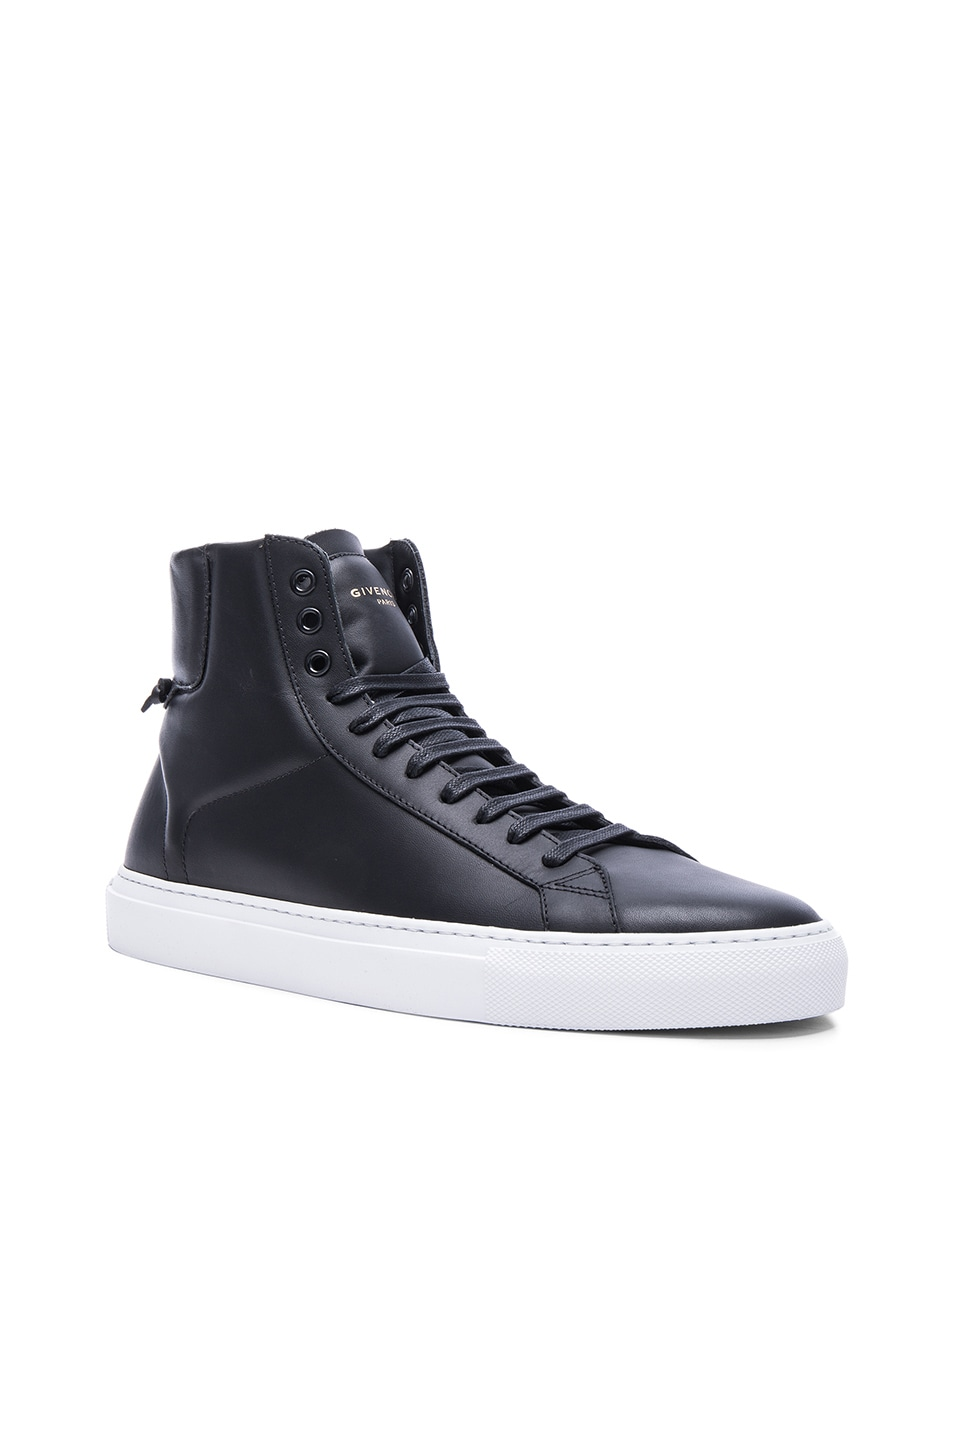 Image 1 of Givenchy Knots High Top Leather Sneakers in Black